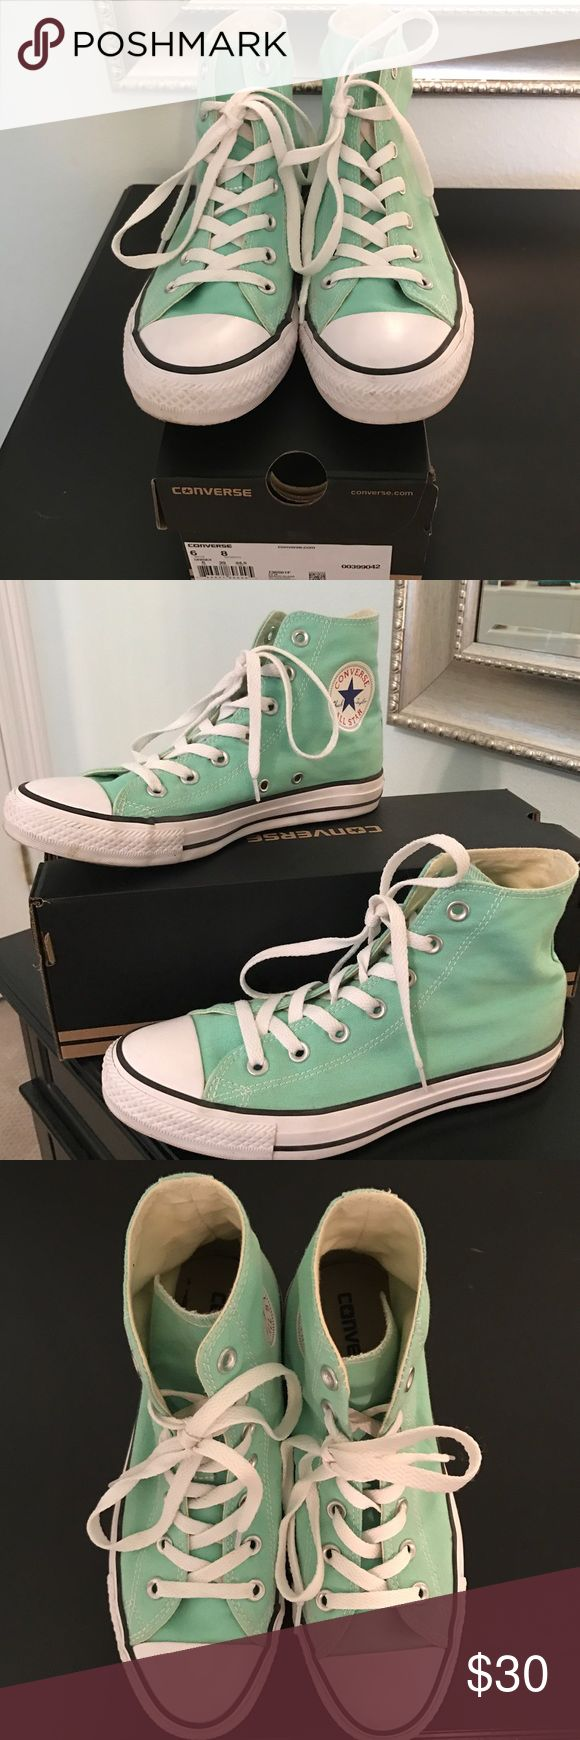 Mint high top Converse Very cute high top sneakers with no significant signs of wear & have been stored in the box. Feel free to make an offer :-) Converse Shoes